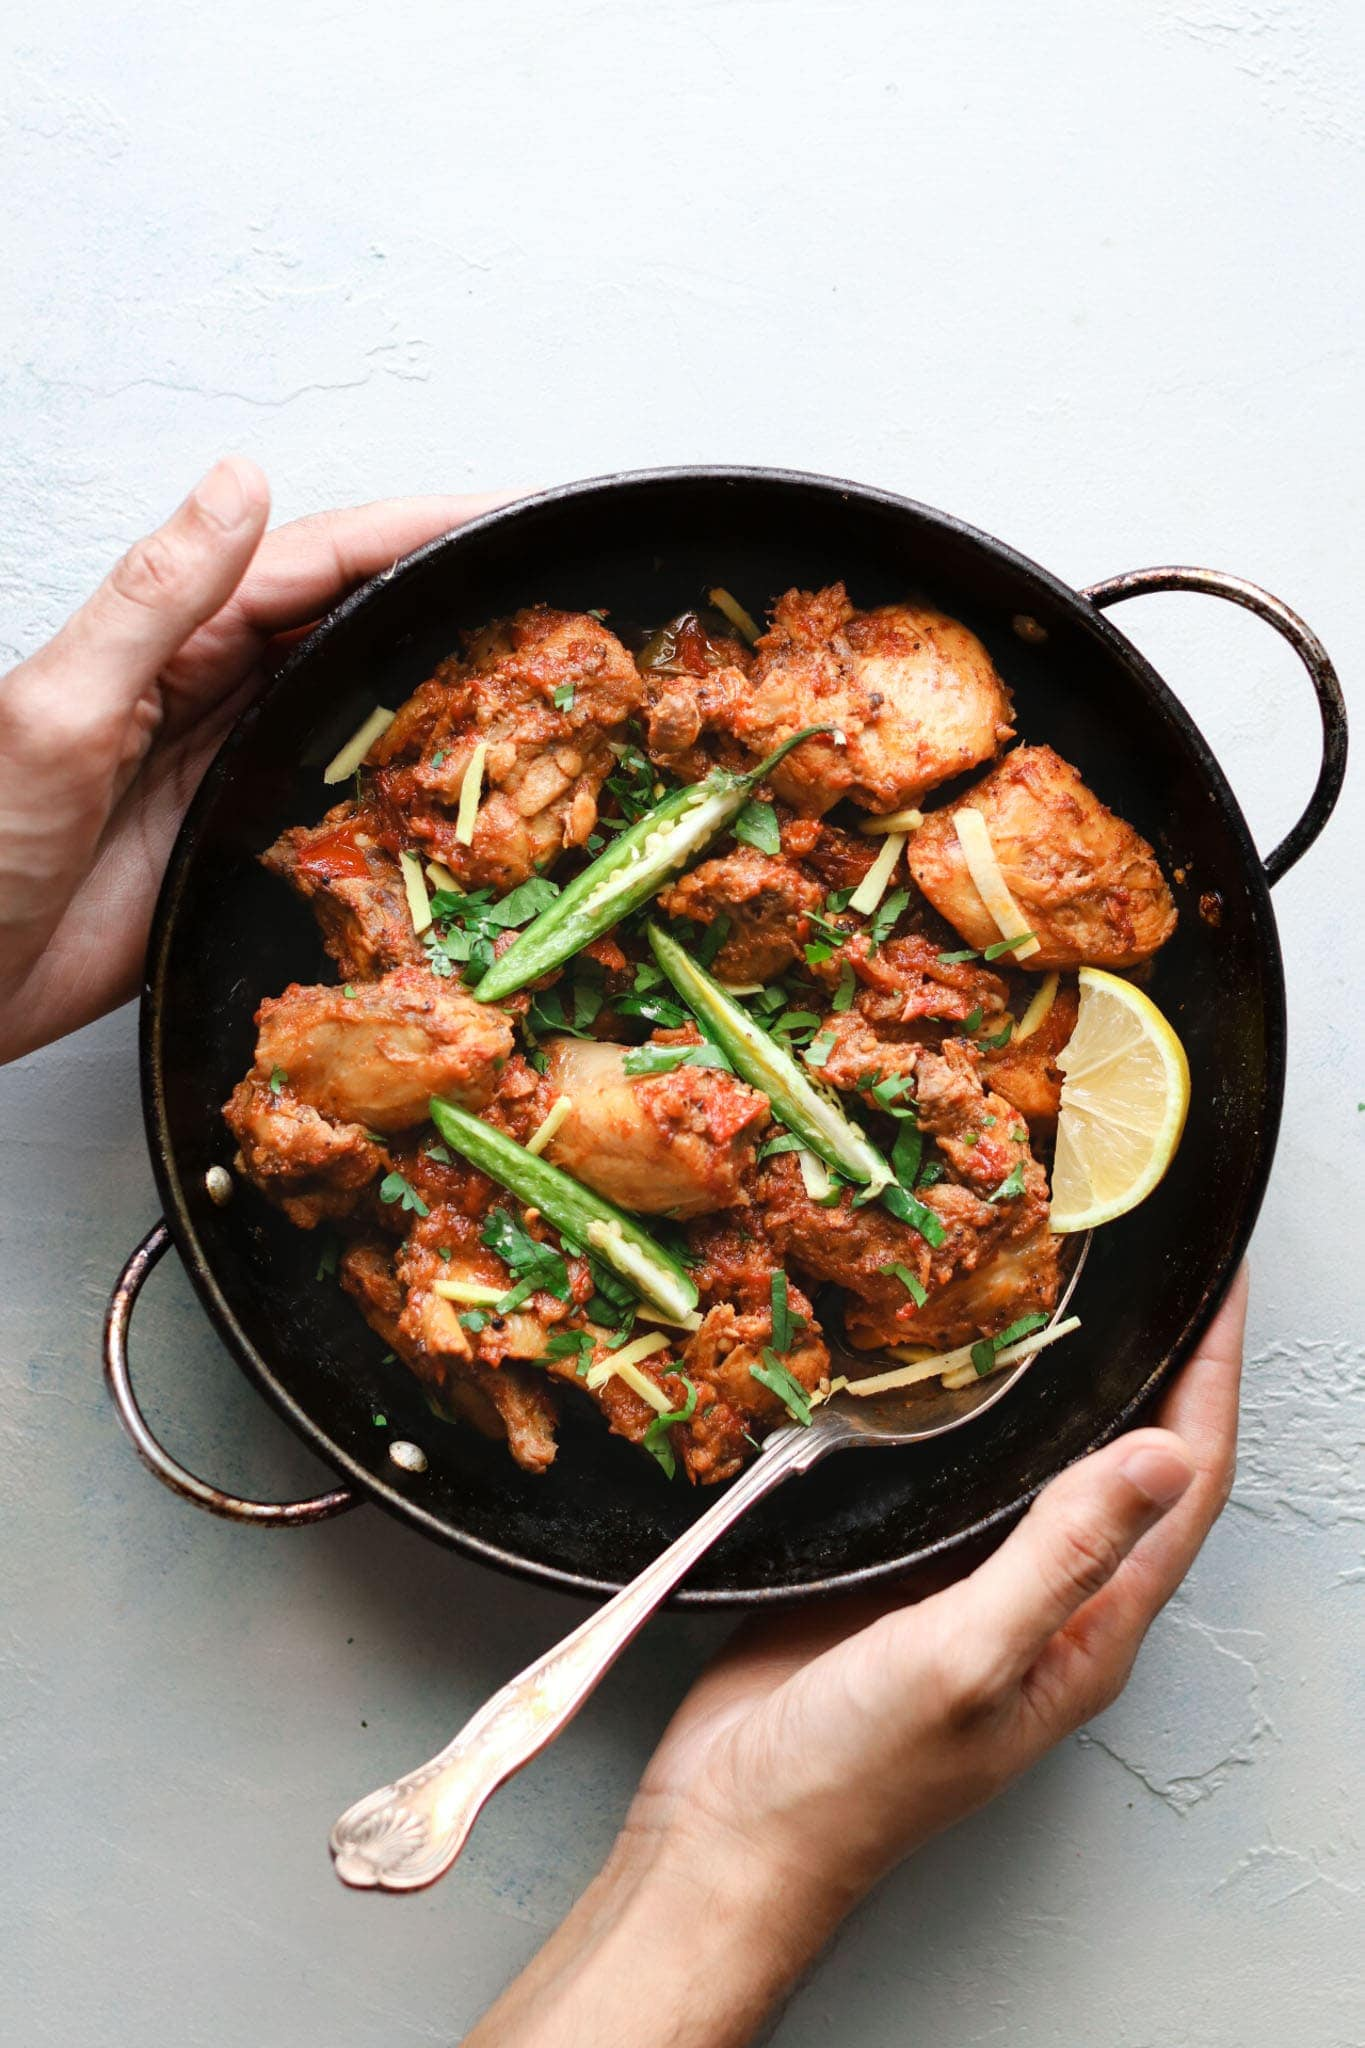 Holding Chicken Karahi in a karahi